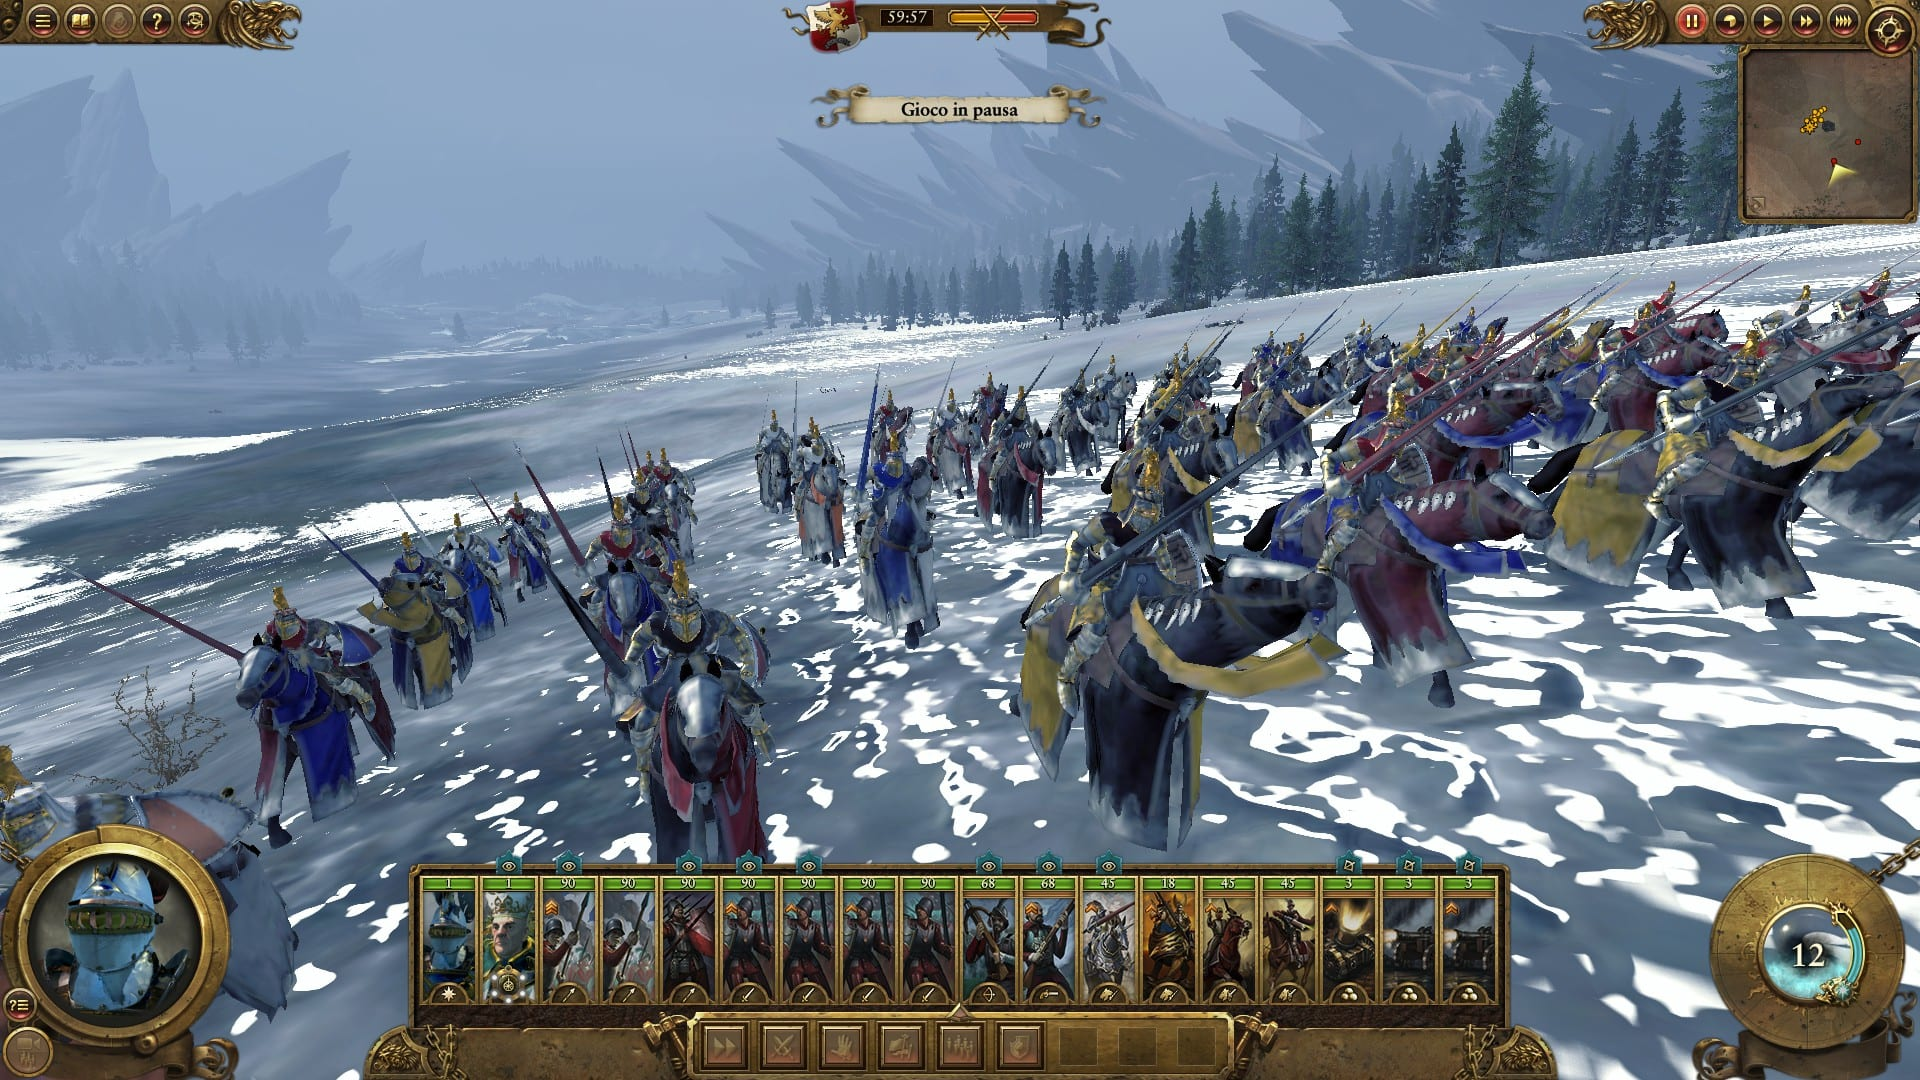 pc gaming.it total war warhammer recensione 2 6 - Total War: Warhammer- Recensione